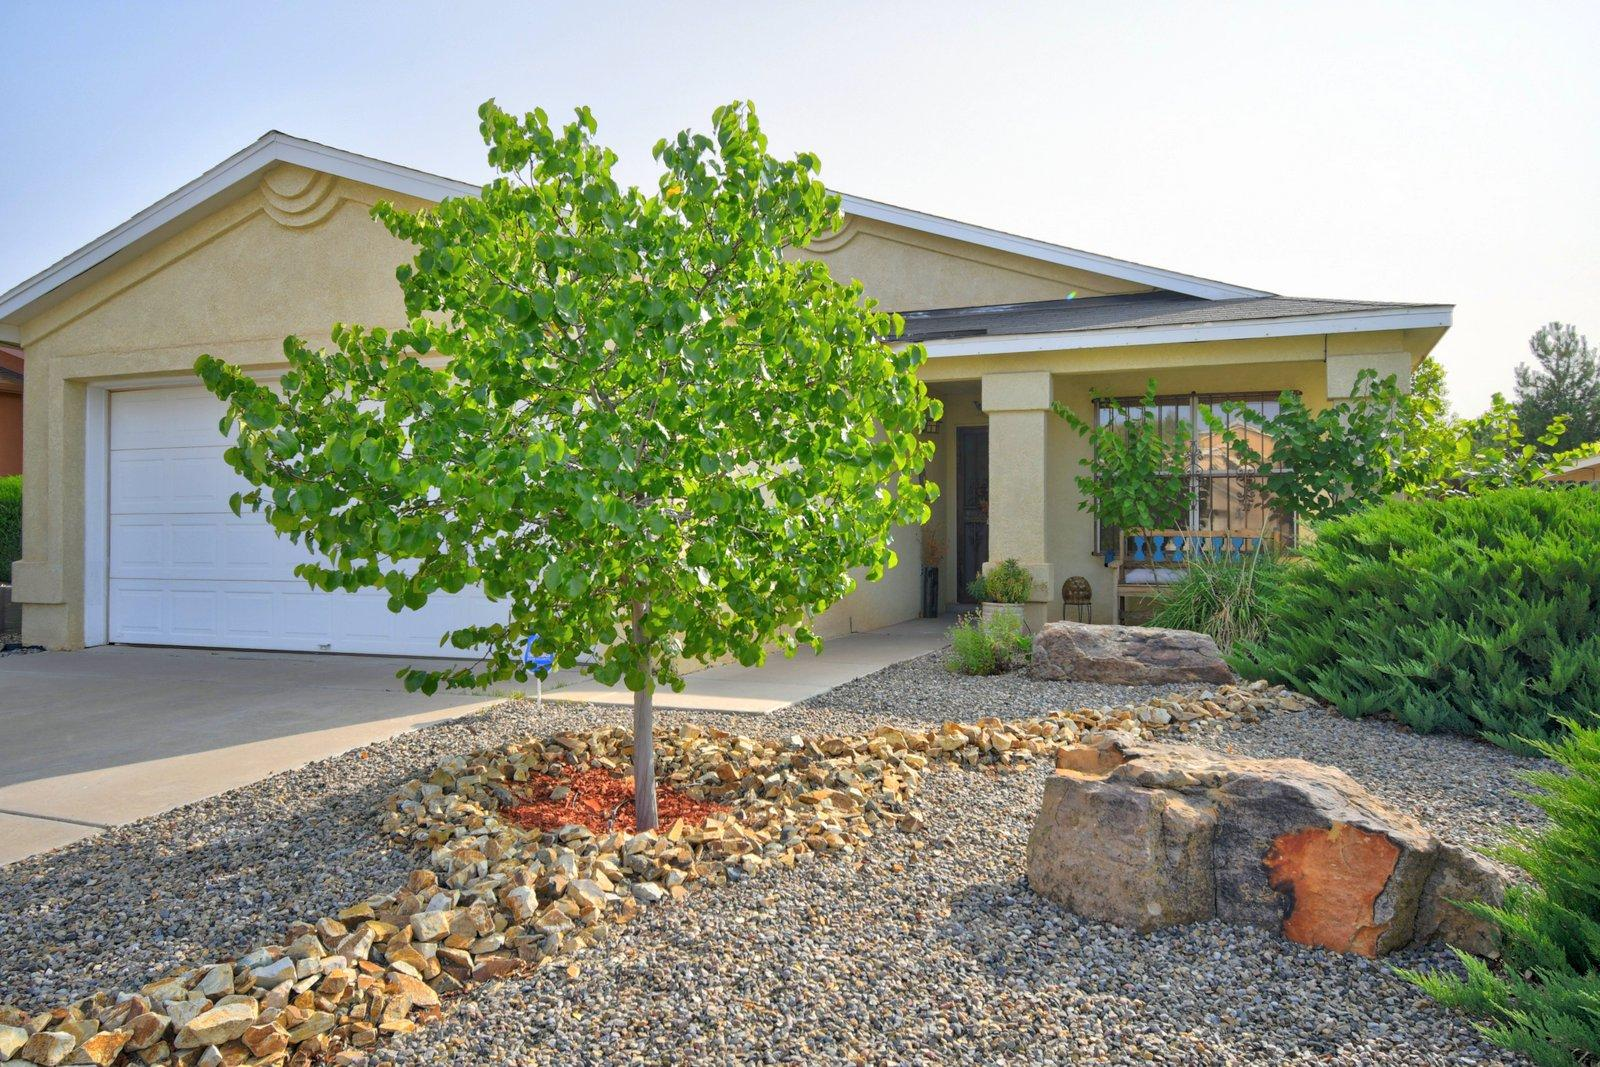 Nestled on a cul de sac street in a much sought after neighborhood. This is a gem of a house!  Featuring a bright, open floorplan, single story and 4 bedrooms.               All appliances stay.  A private backyard that is a gardener's delight.